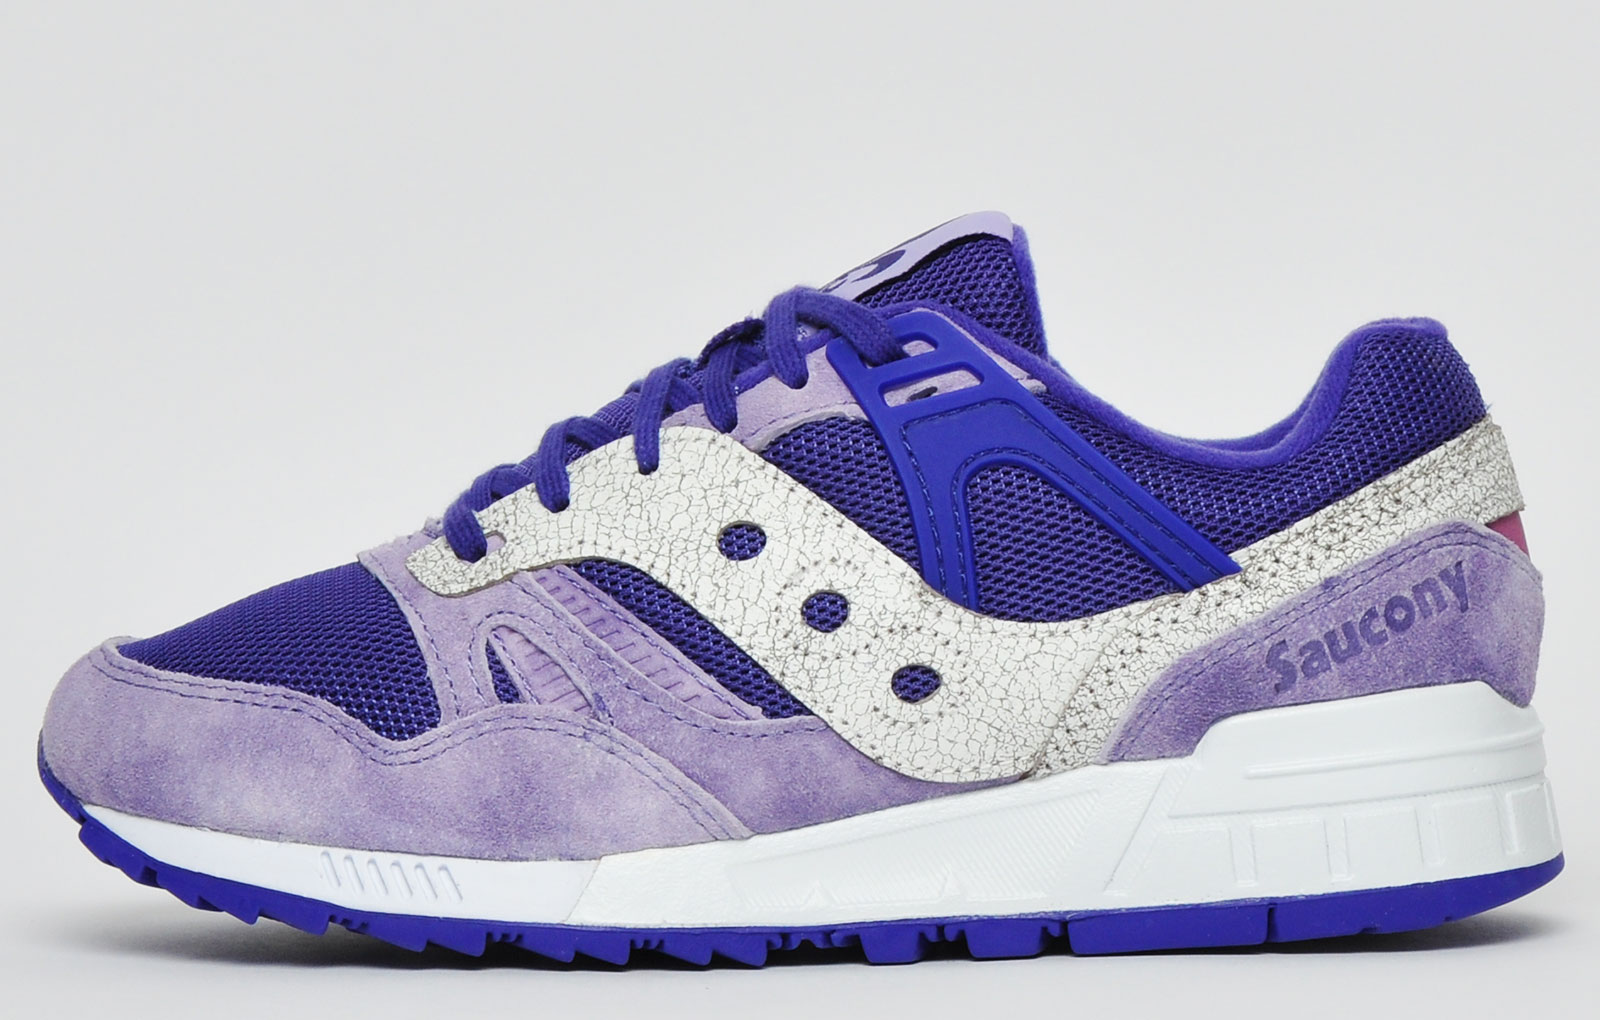 SAUCONY GRID SD GARDEN DISTRICT PURPLE WHITE MENS SIZE SNEAKERS S70416-3